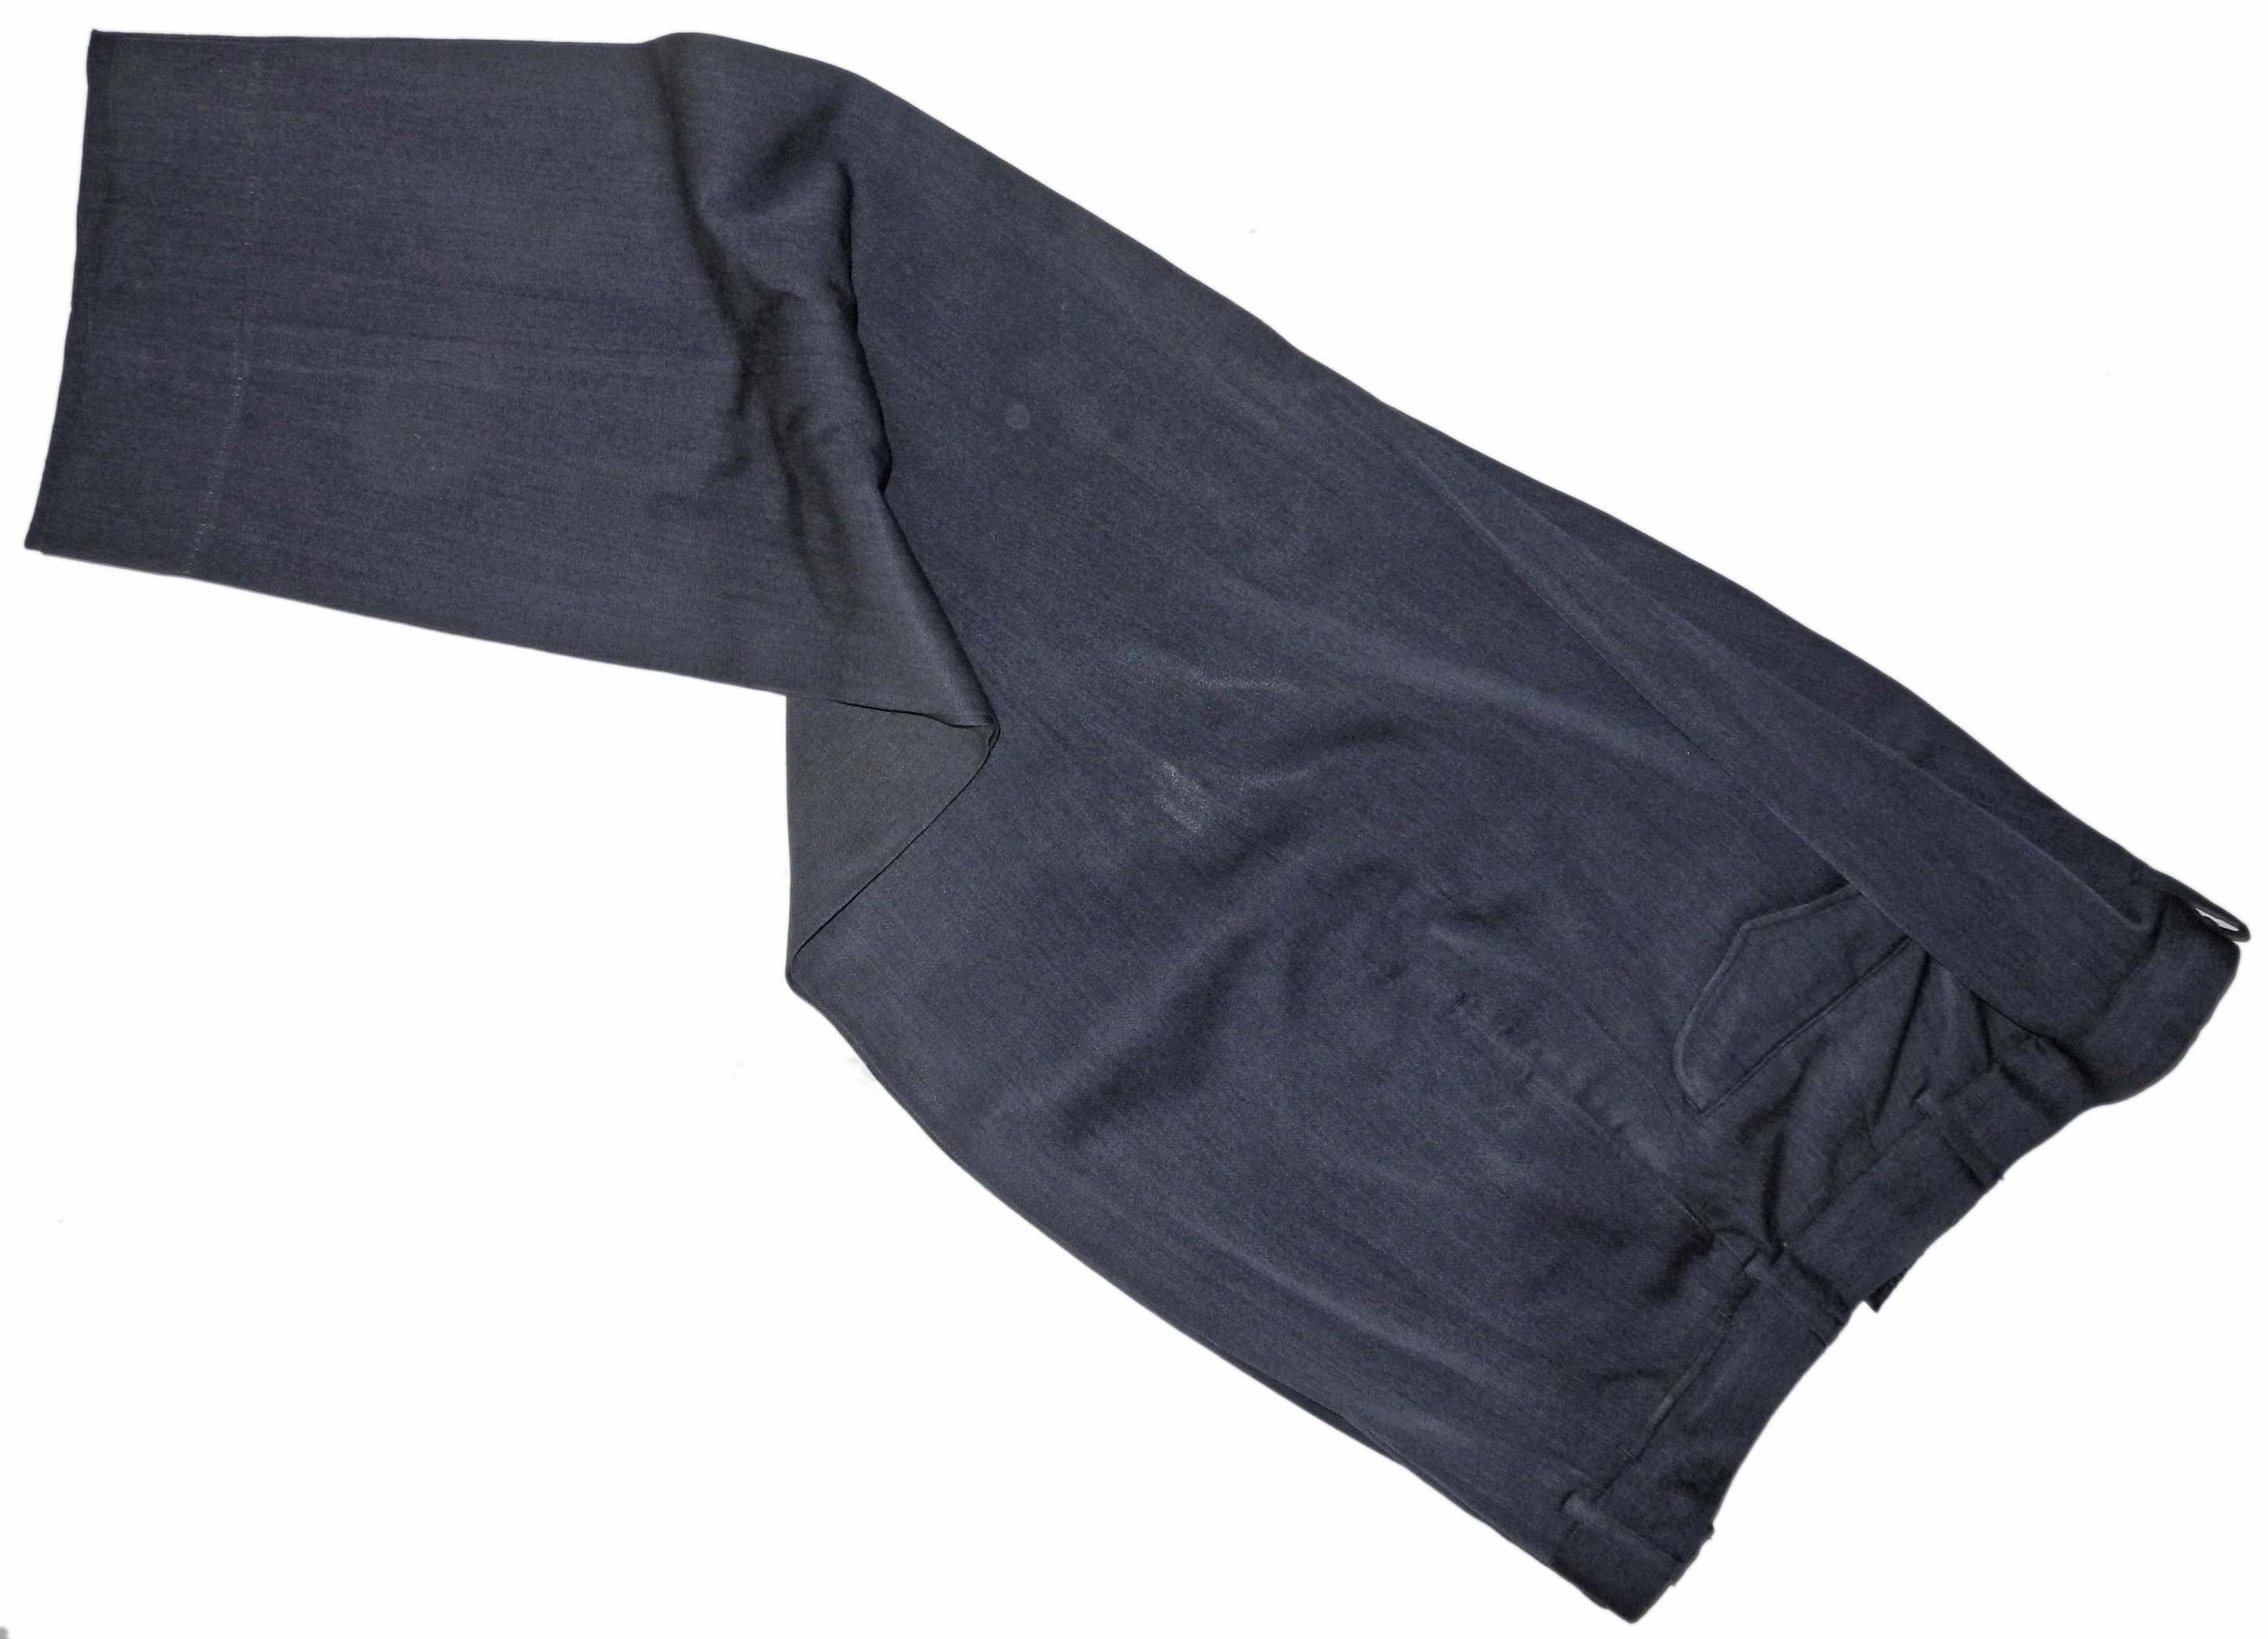 USAF 1950s ike jacket and trousers to Senior Pilot